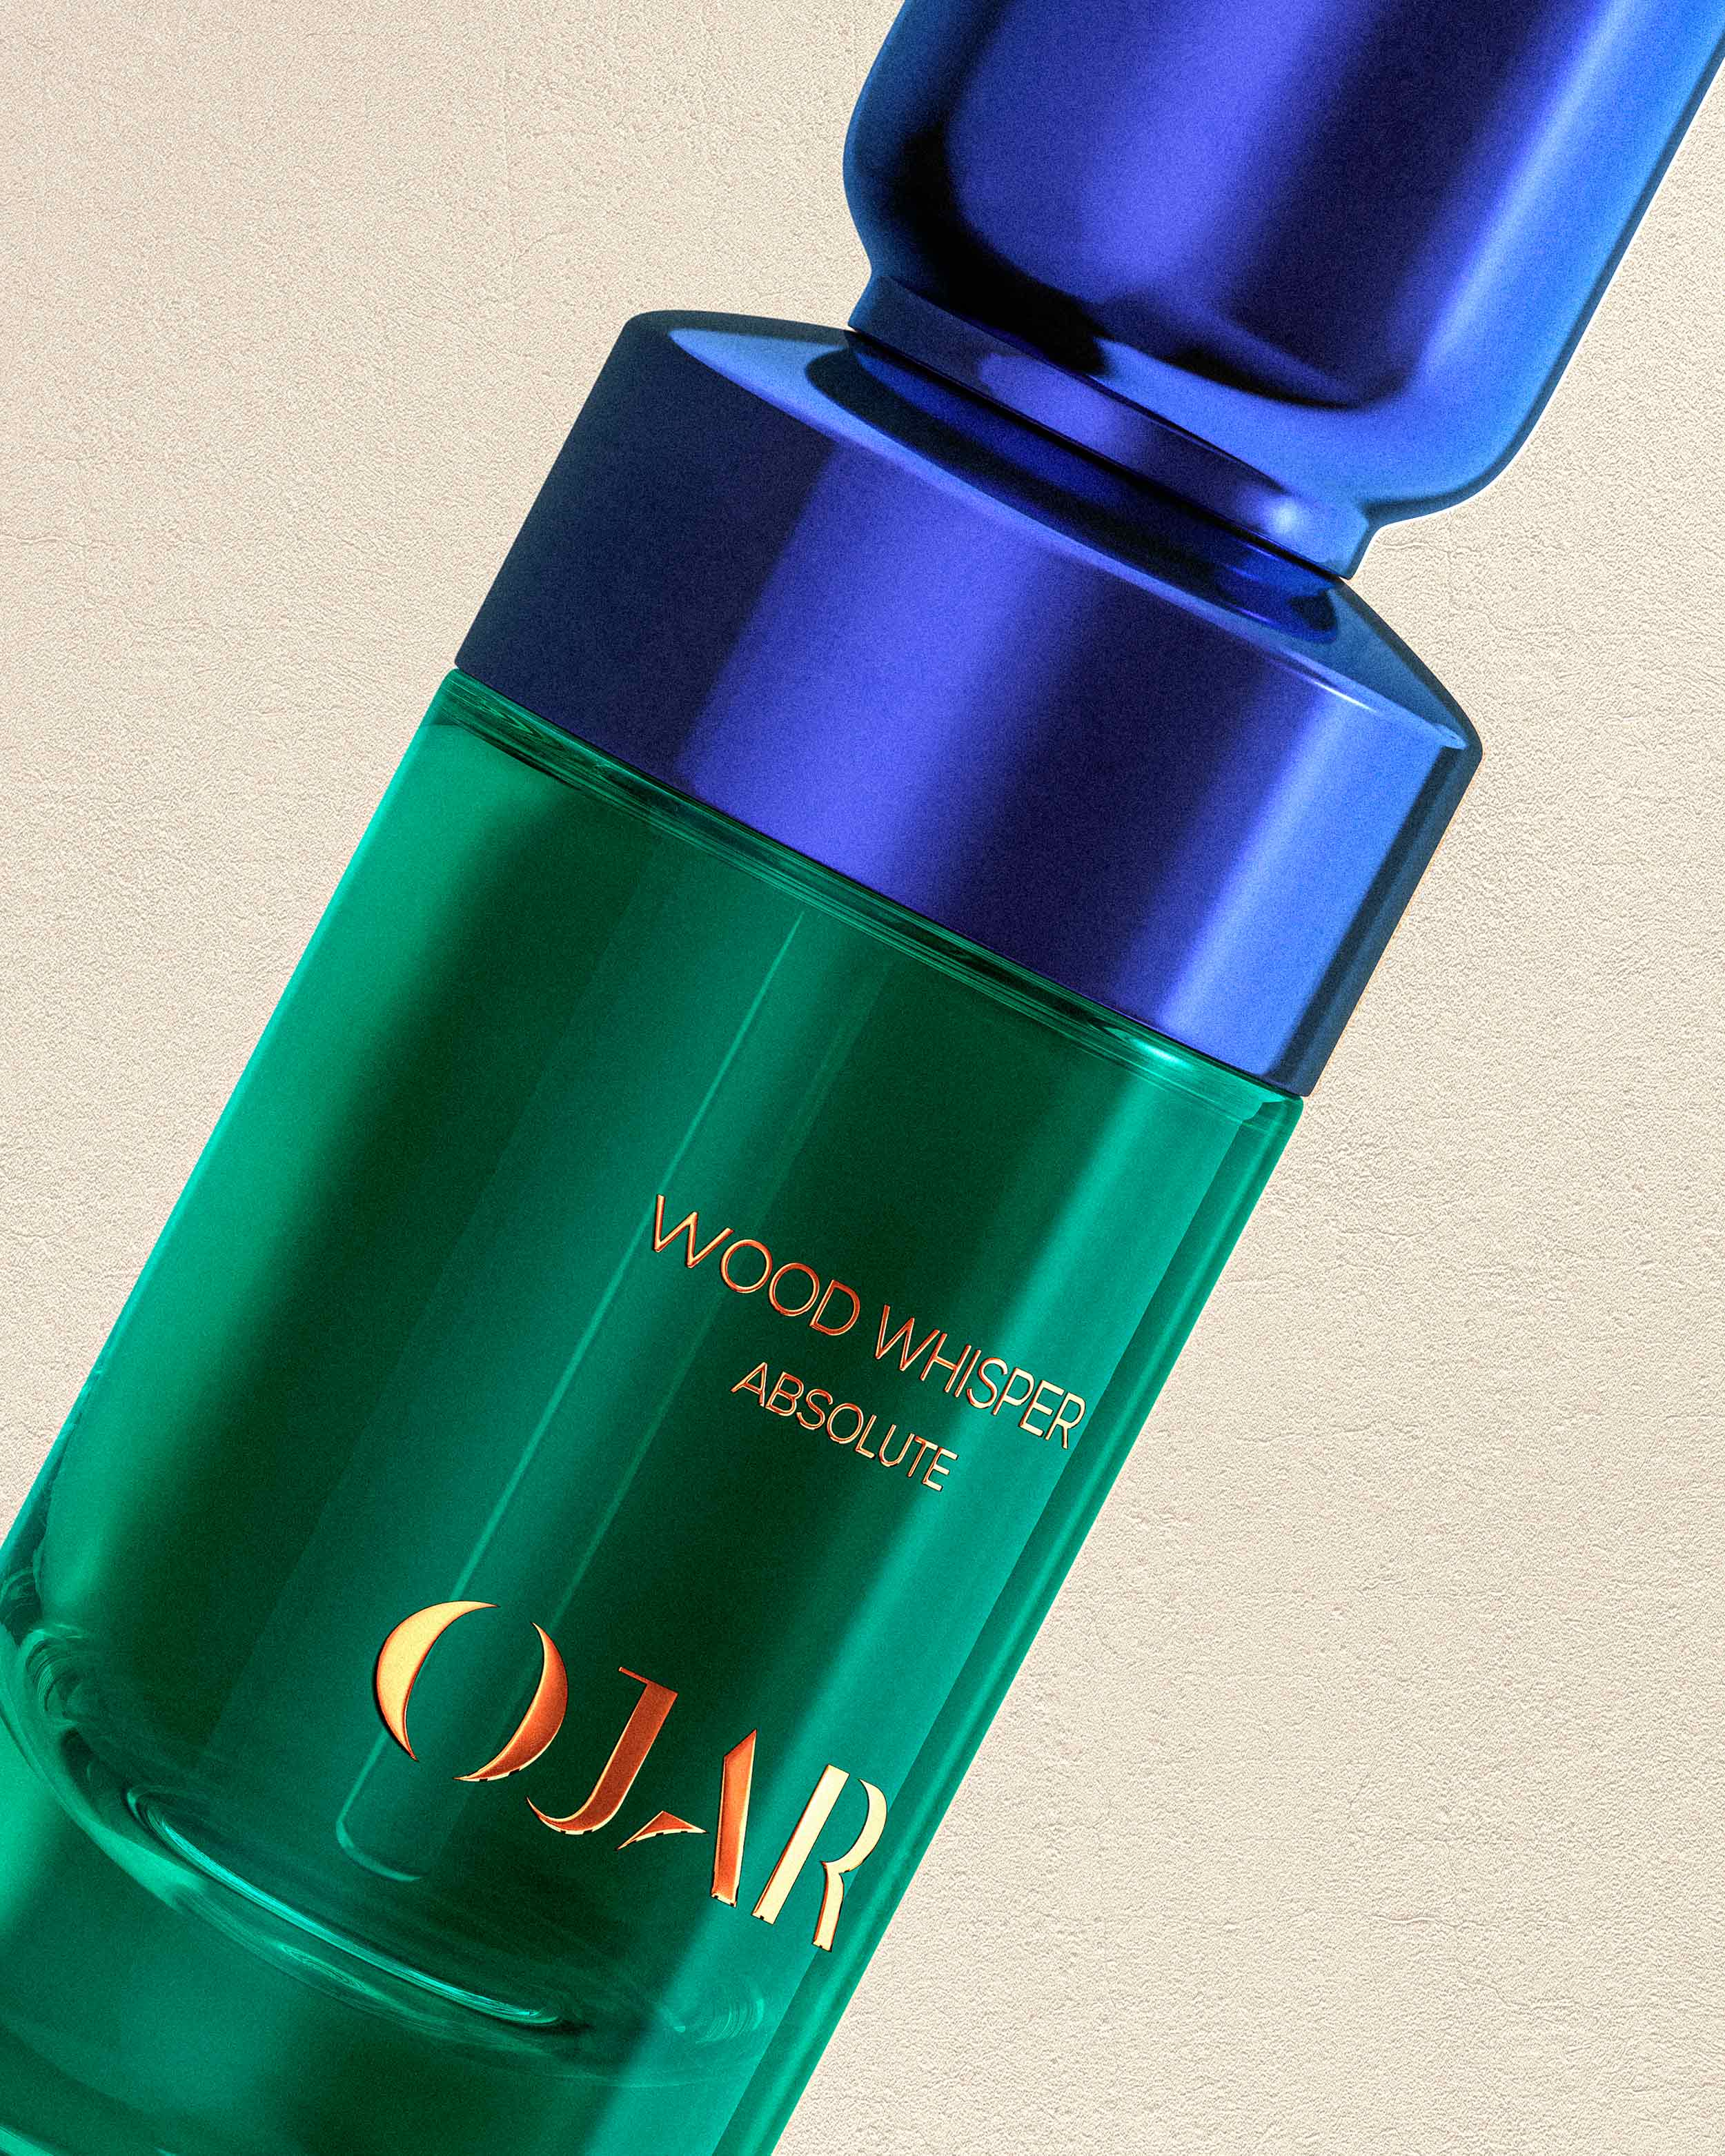 OJAR Absolute Wood Whisper Perfume Close Up